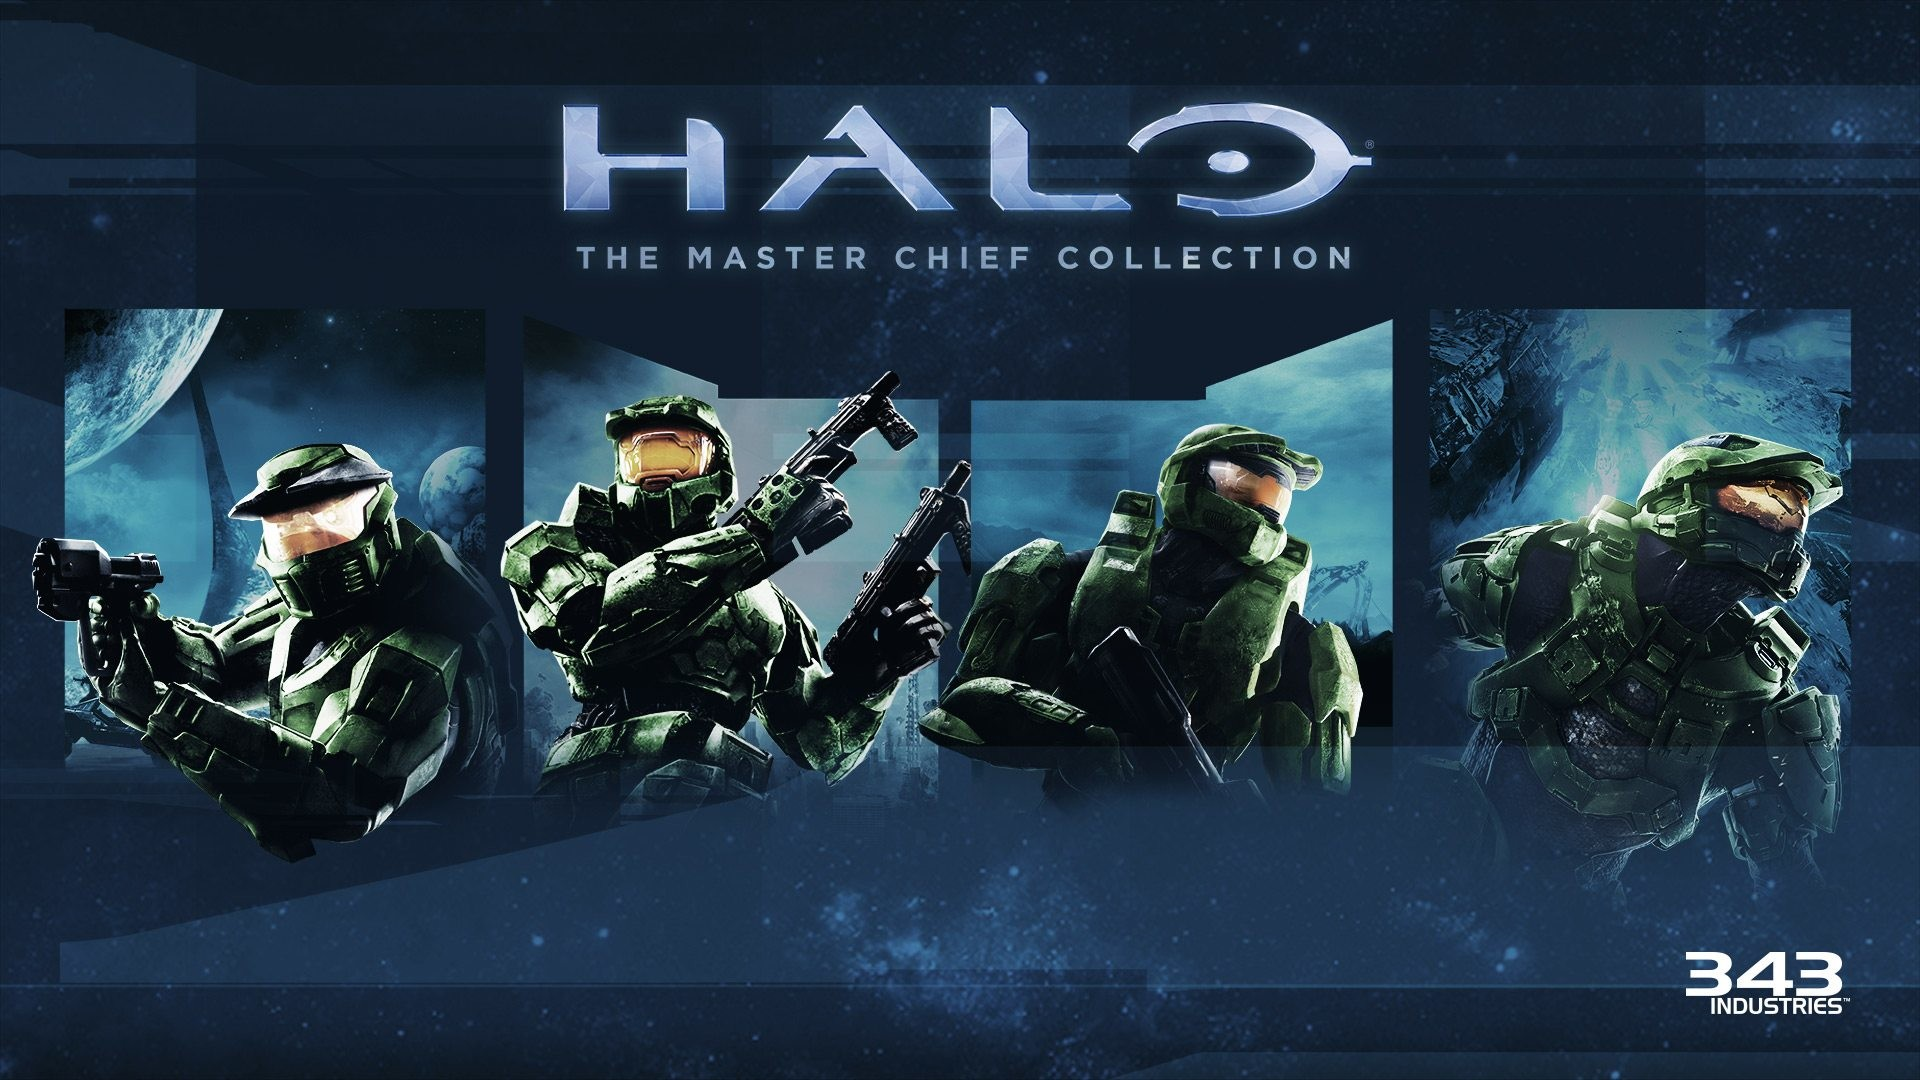 1920x1080 halo-master-chief-collection-wallpaper --ba6a1e3483ea49309b3fb8017857478f